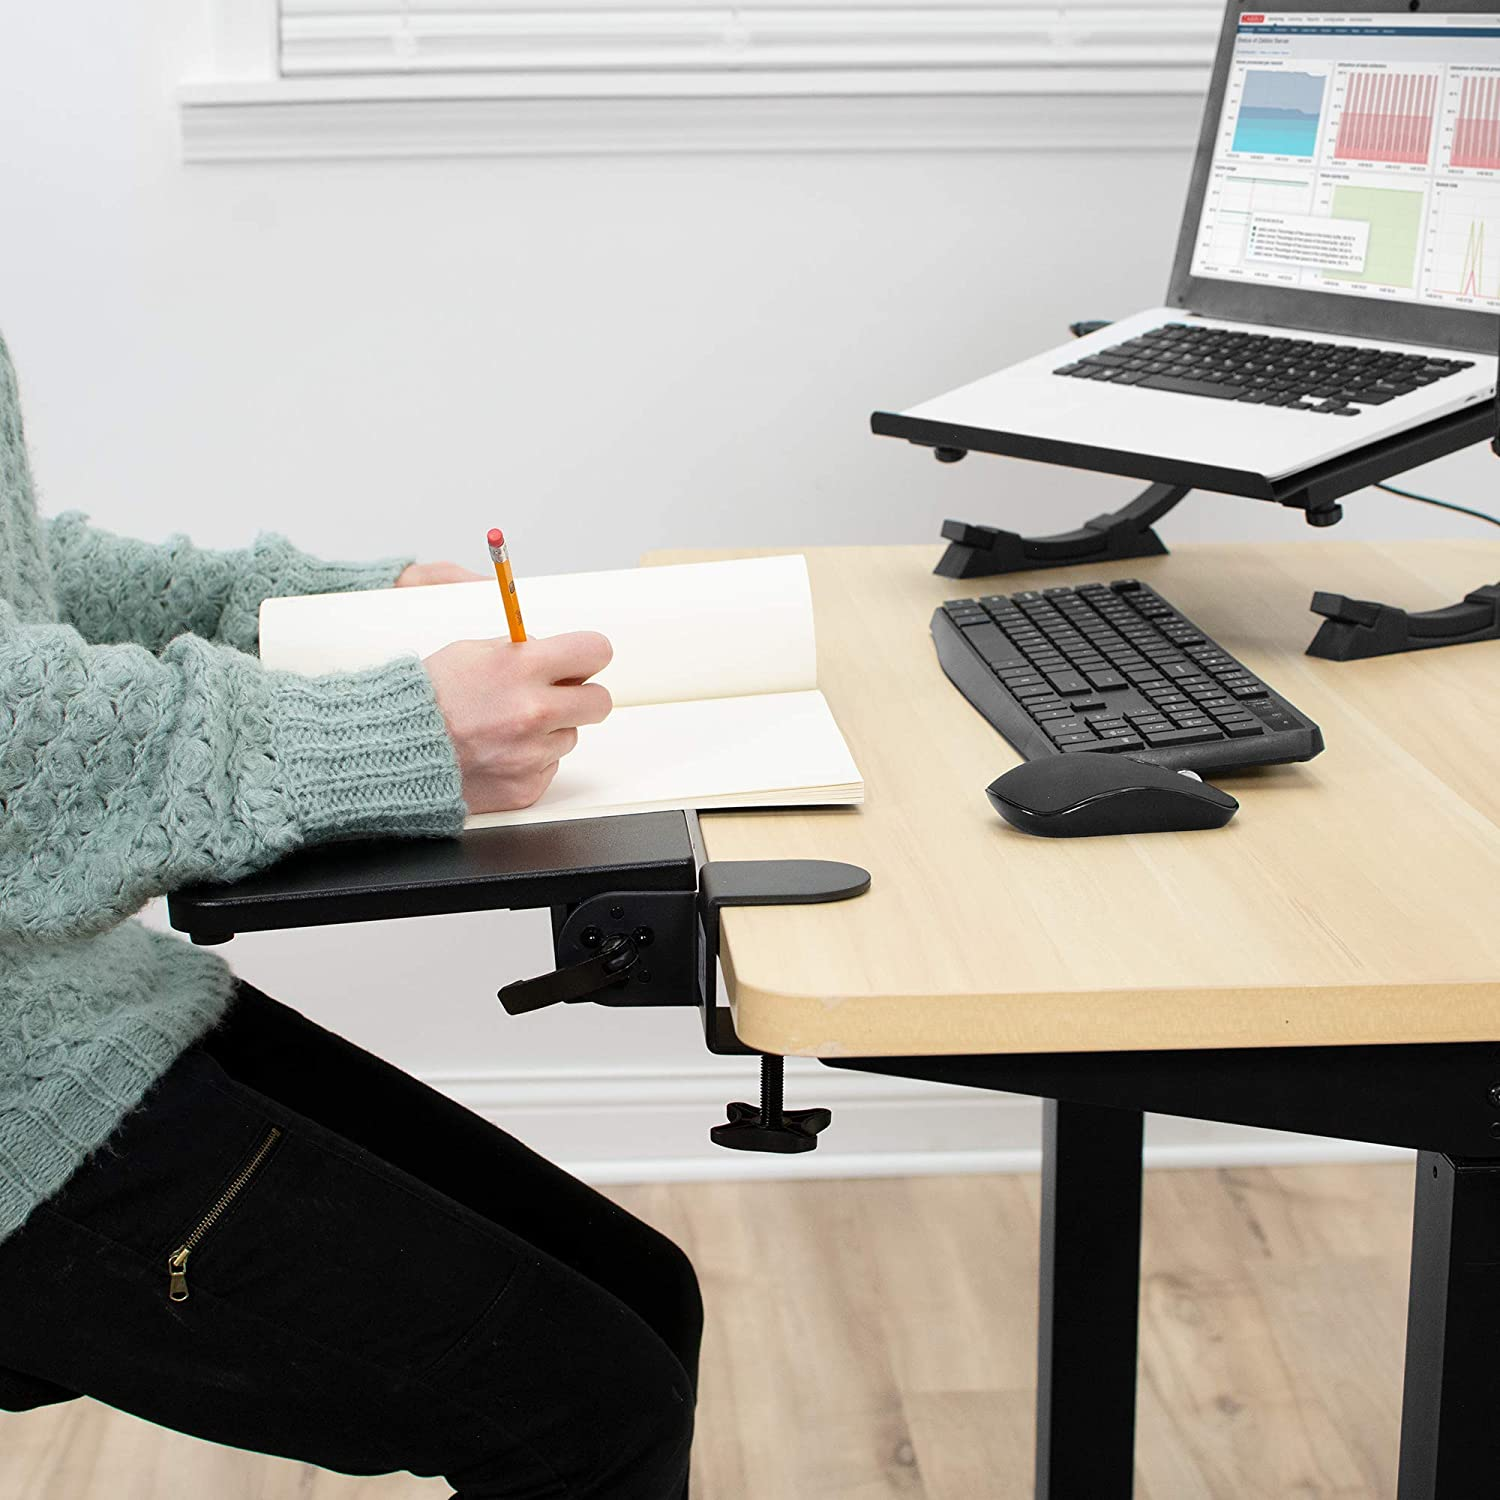 Black 26 x 9 inch Extension Platform for Typing and Mouse Work MOUNT-KB06H VIVO Clamp On Tilting Keyboard Tray Elbow and Arm Support Rest